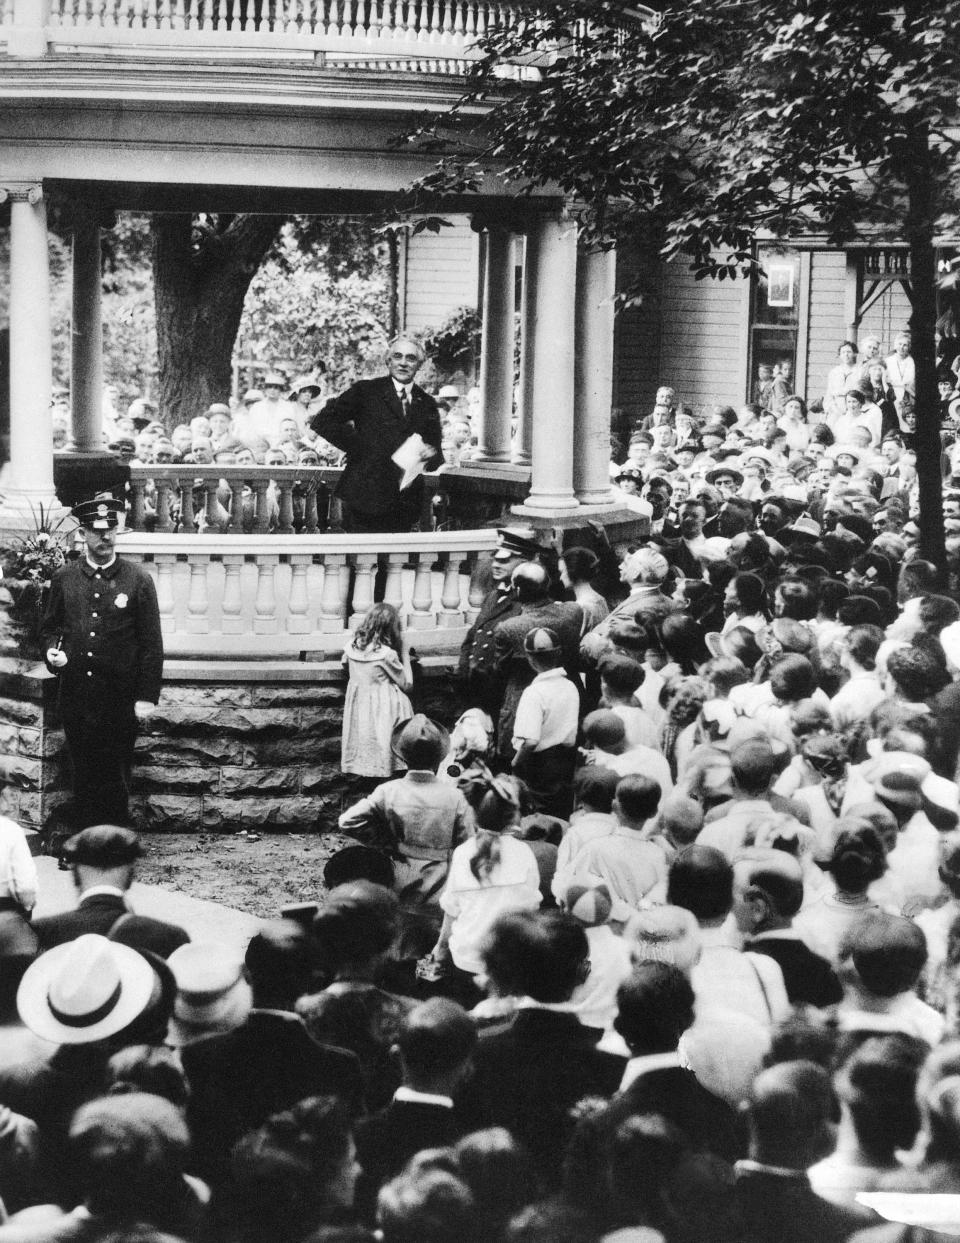 FILE-This July 1920 file photo shows six thousand people gathering to hear Sen. Warren G. Harding, R-OH, speak from the porch of his home in Marion, Ohio. The centennial of President Warren G. Harding's election was marked Monday in his home county in Ohio with a modest radio tribute rather than the grand museum and homestead re-opening envisioned before the pandemic. Harding, a Republican, was elected Nov. 2, 1920, his 55th birthday, succeeding Democrat Woodrow Wilson. He beat a fellow Ohio newspaper publisher, James Cox, on a platform of restoring normalcy after World War I and the 1918 influenza pandemic. (AP Photo, File)